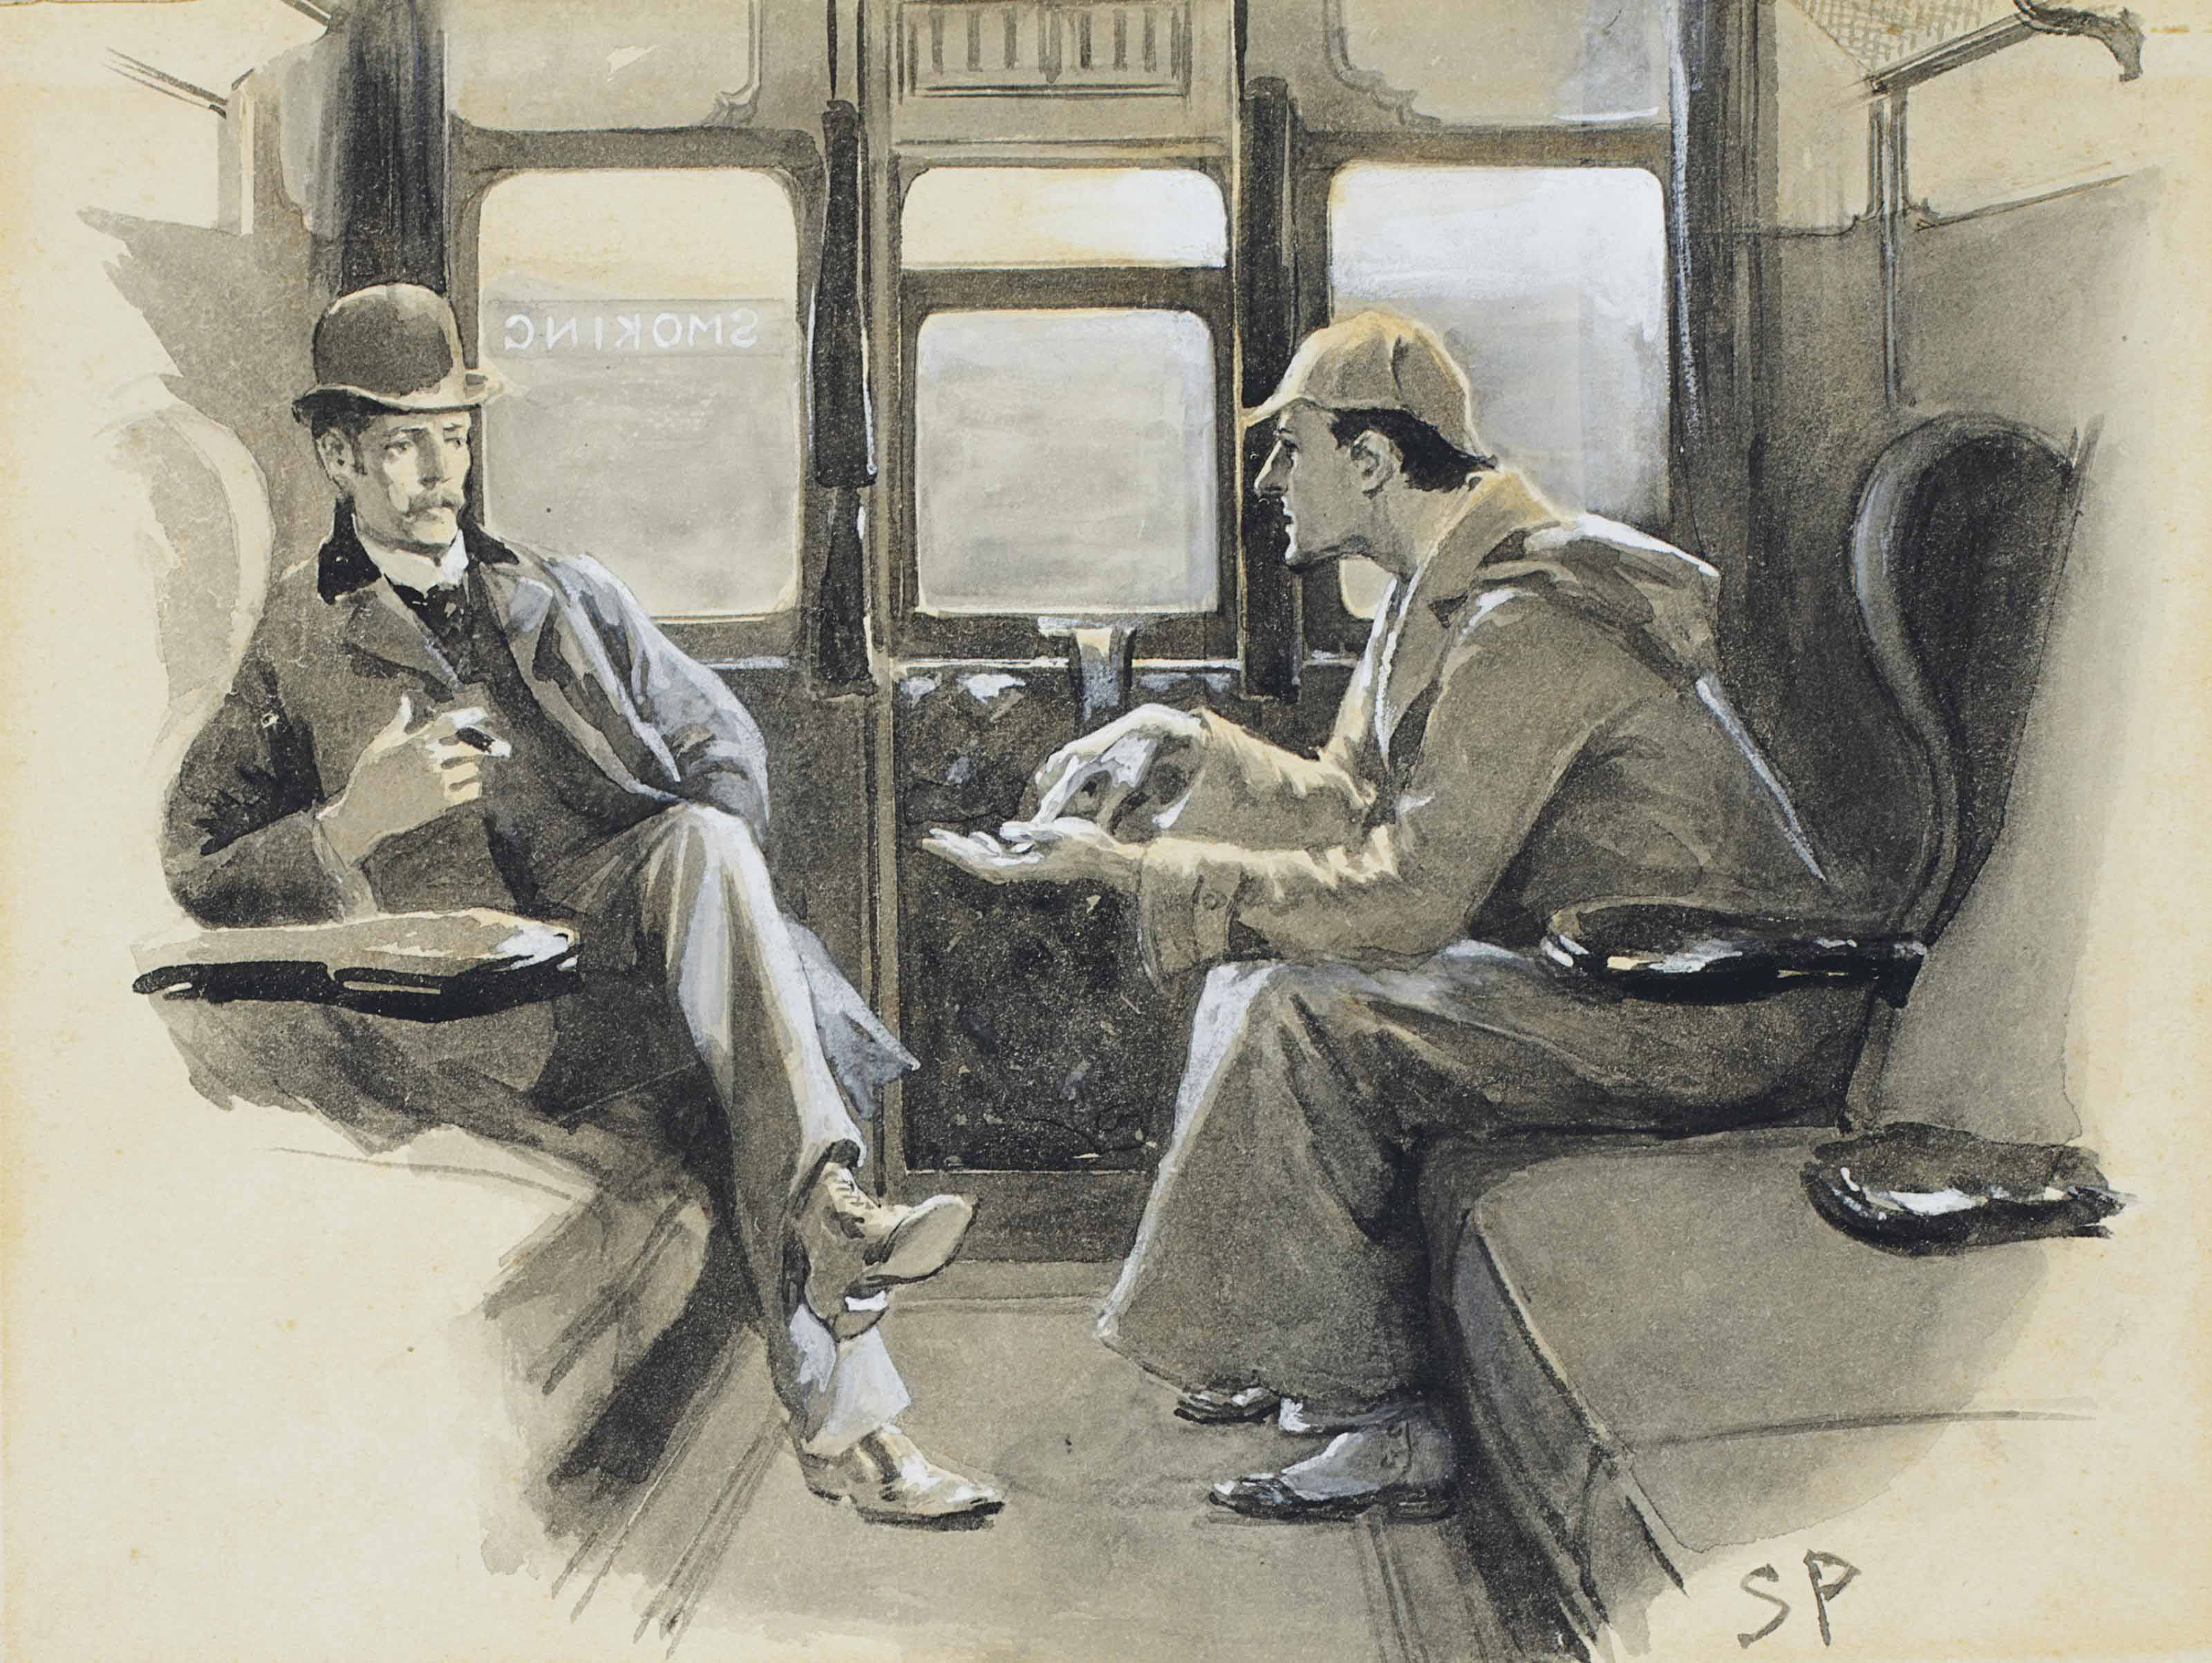 """[DOYLE, Arthur Conan]. PAGET, Sidney (1860-1908), Illustrator. Original gouache and watercolor drawing for Arthur Conan Doyle's Sherlock Holmes story """"The Adventure of Silver Blaze,"""" signed """"SP"""" in lower right-hand corner. The drawing is captioned in ink (probably by Paget) along the right-hand margin: """"Holmes gave me a sketch of the events."""" Published in The Strand Magazine, December 1892, p. 646."""